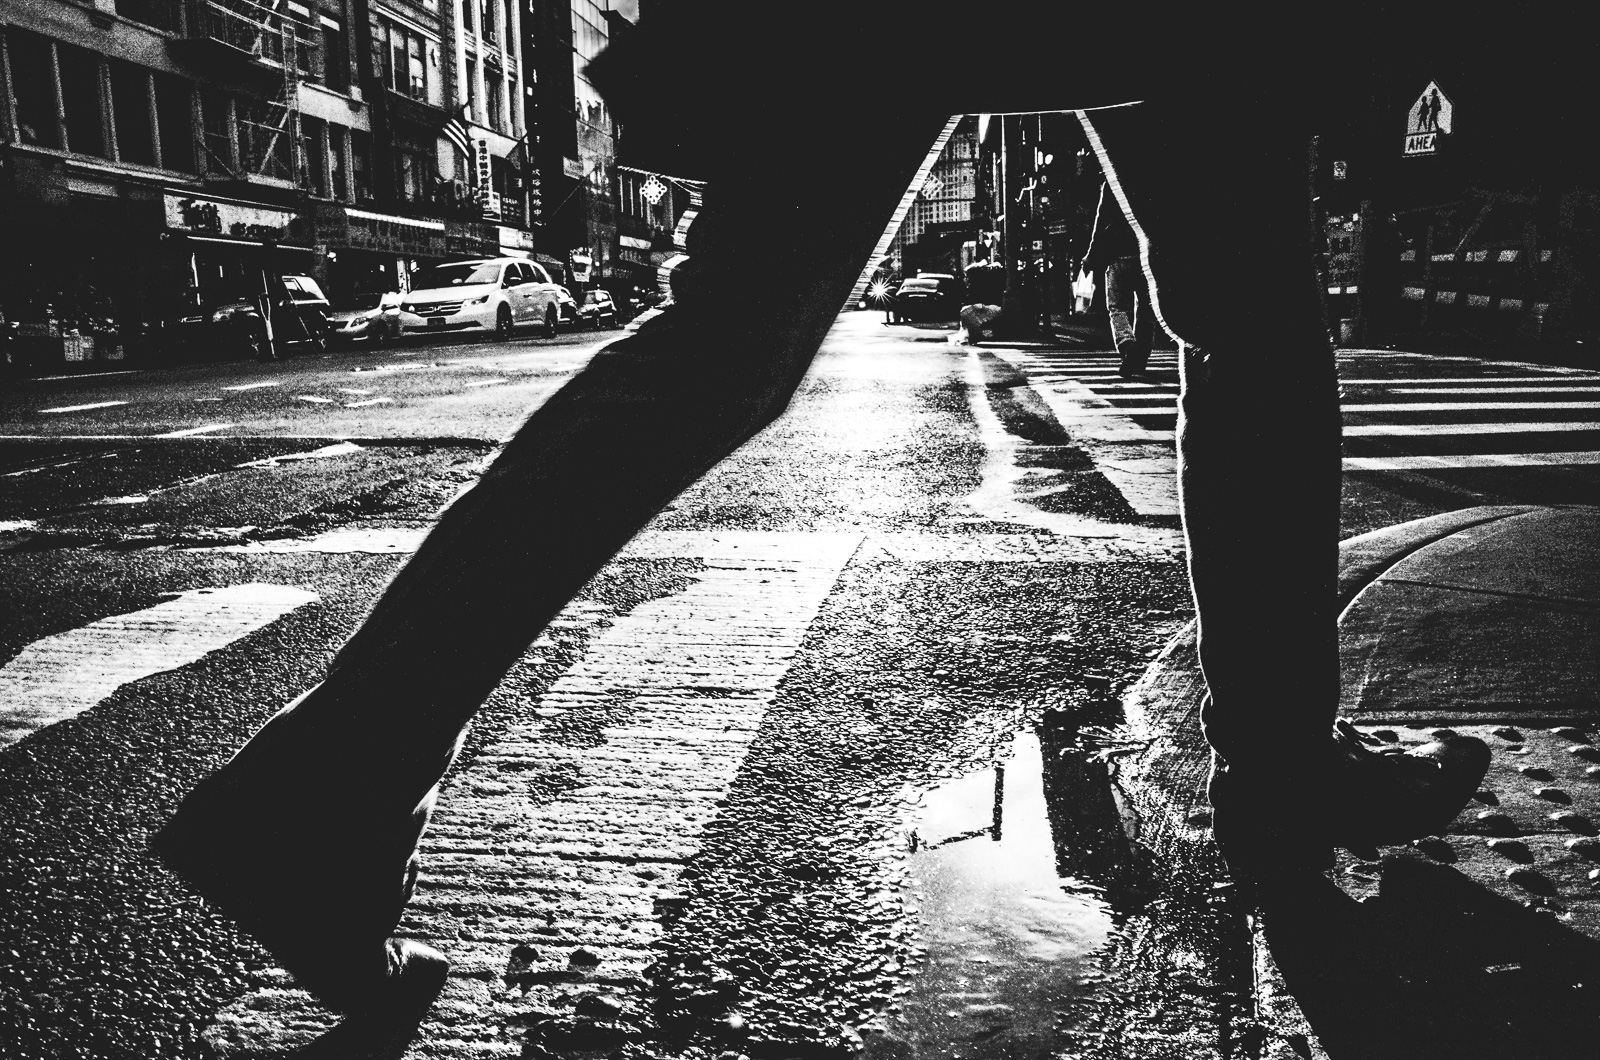 Man steps over a  puddle onto a sidewalk on East Broadway Street in New York City